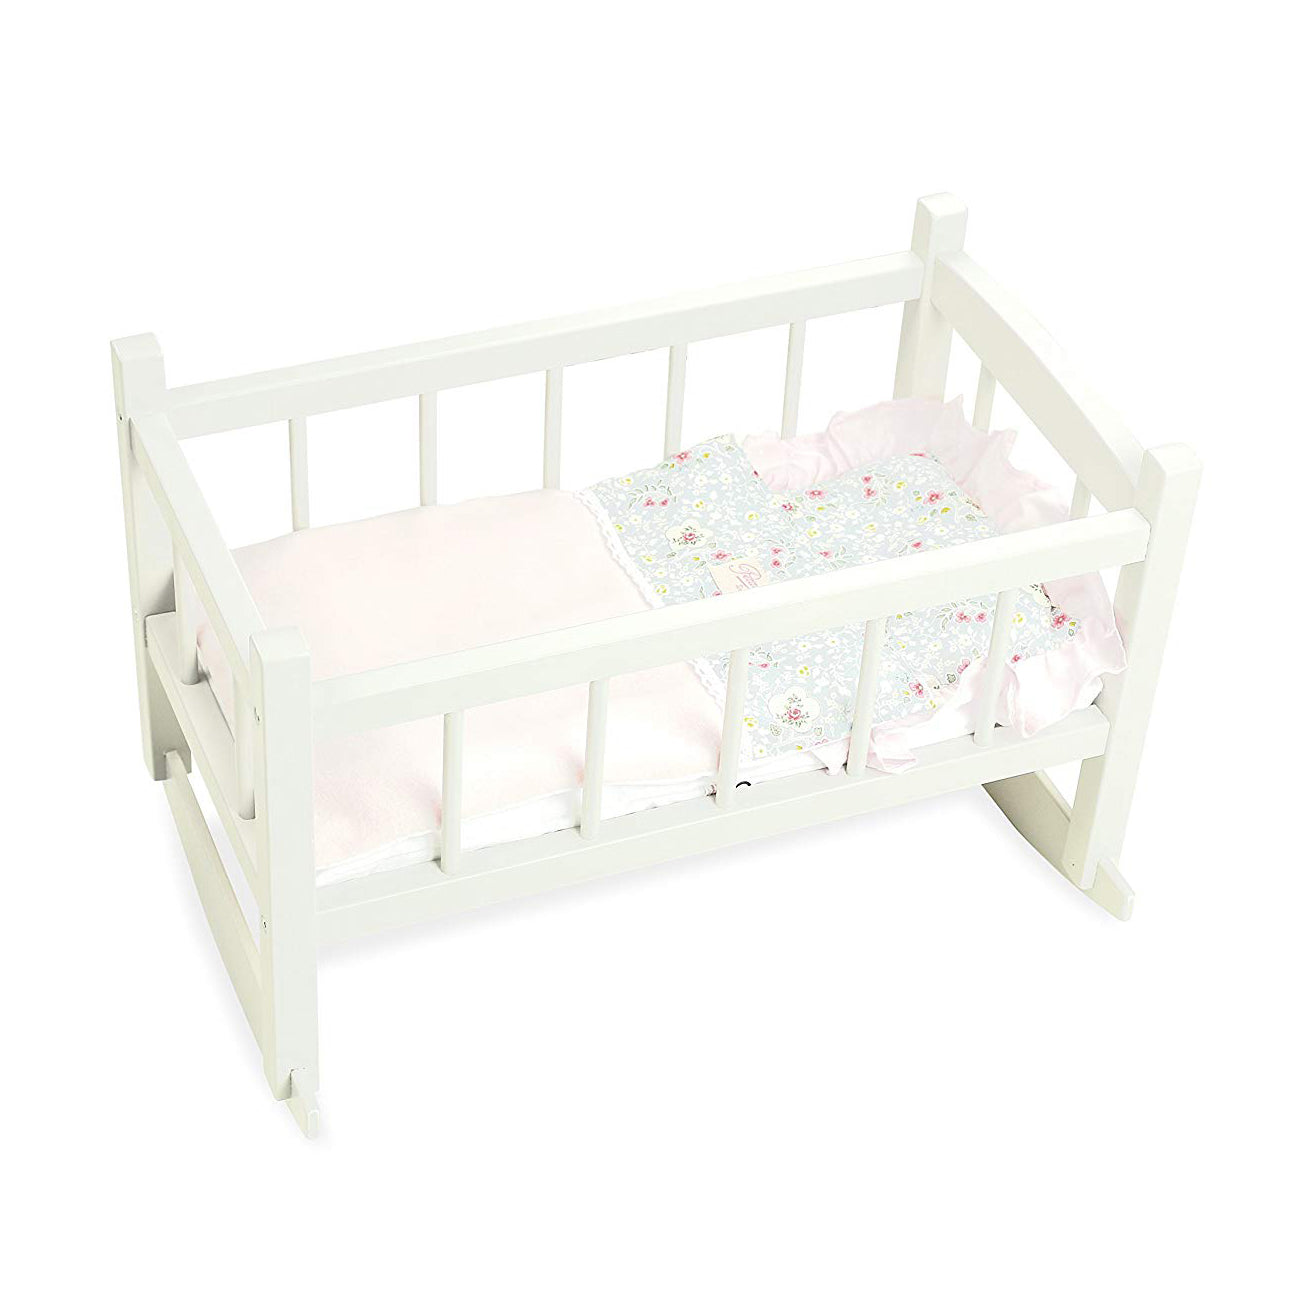 White Wooden Dolls Rocking Cradle - Petiticollin by Vilac